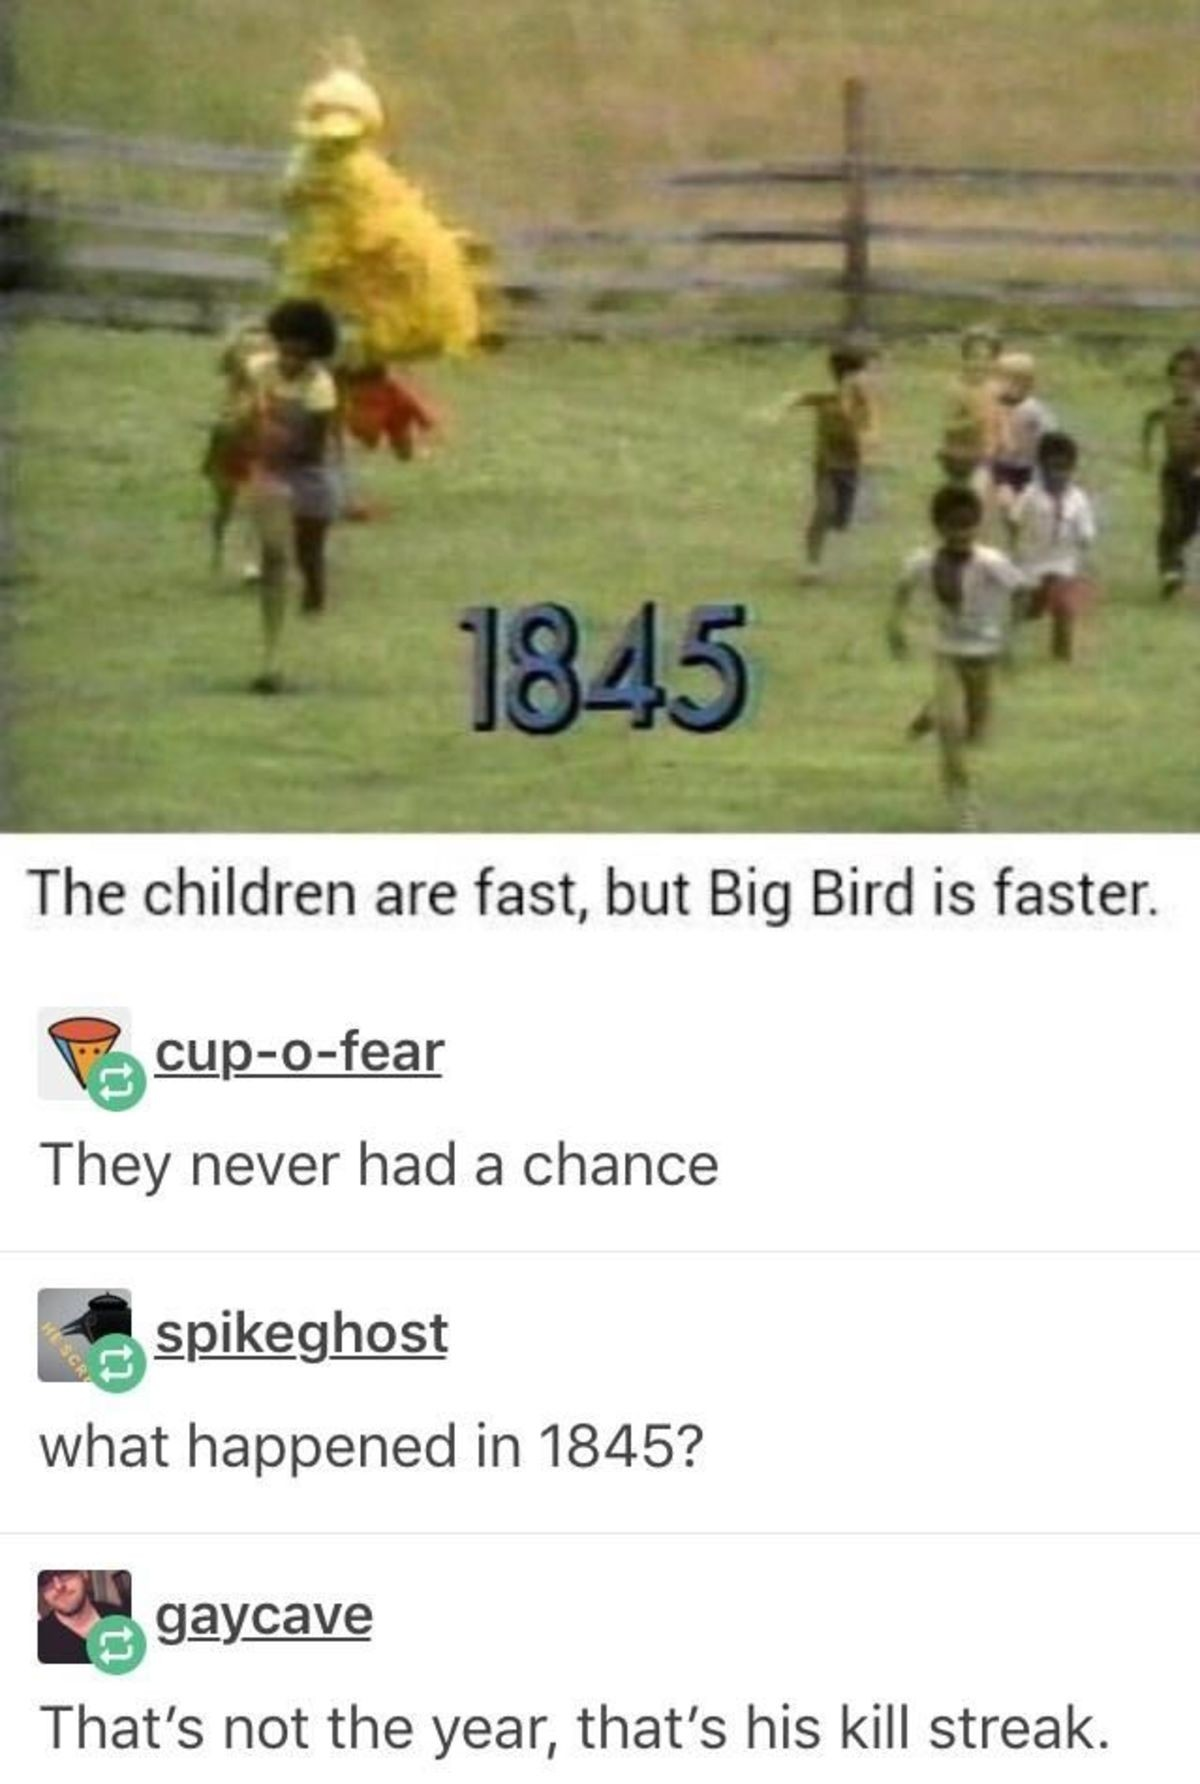 Big Bird. . The children are fast, but Big Bird is faster. They never had 'Fri' chance what happened in 1845? That' s not the year, that' s his kill streak.